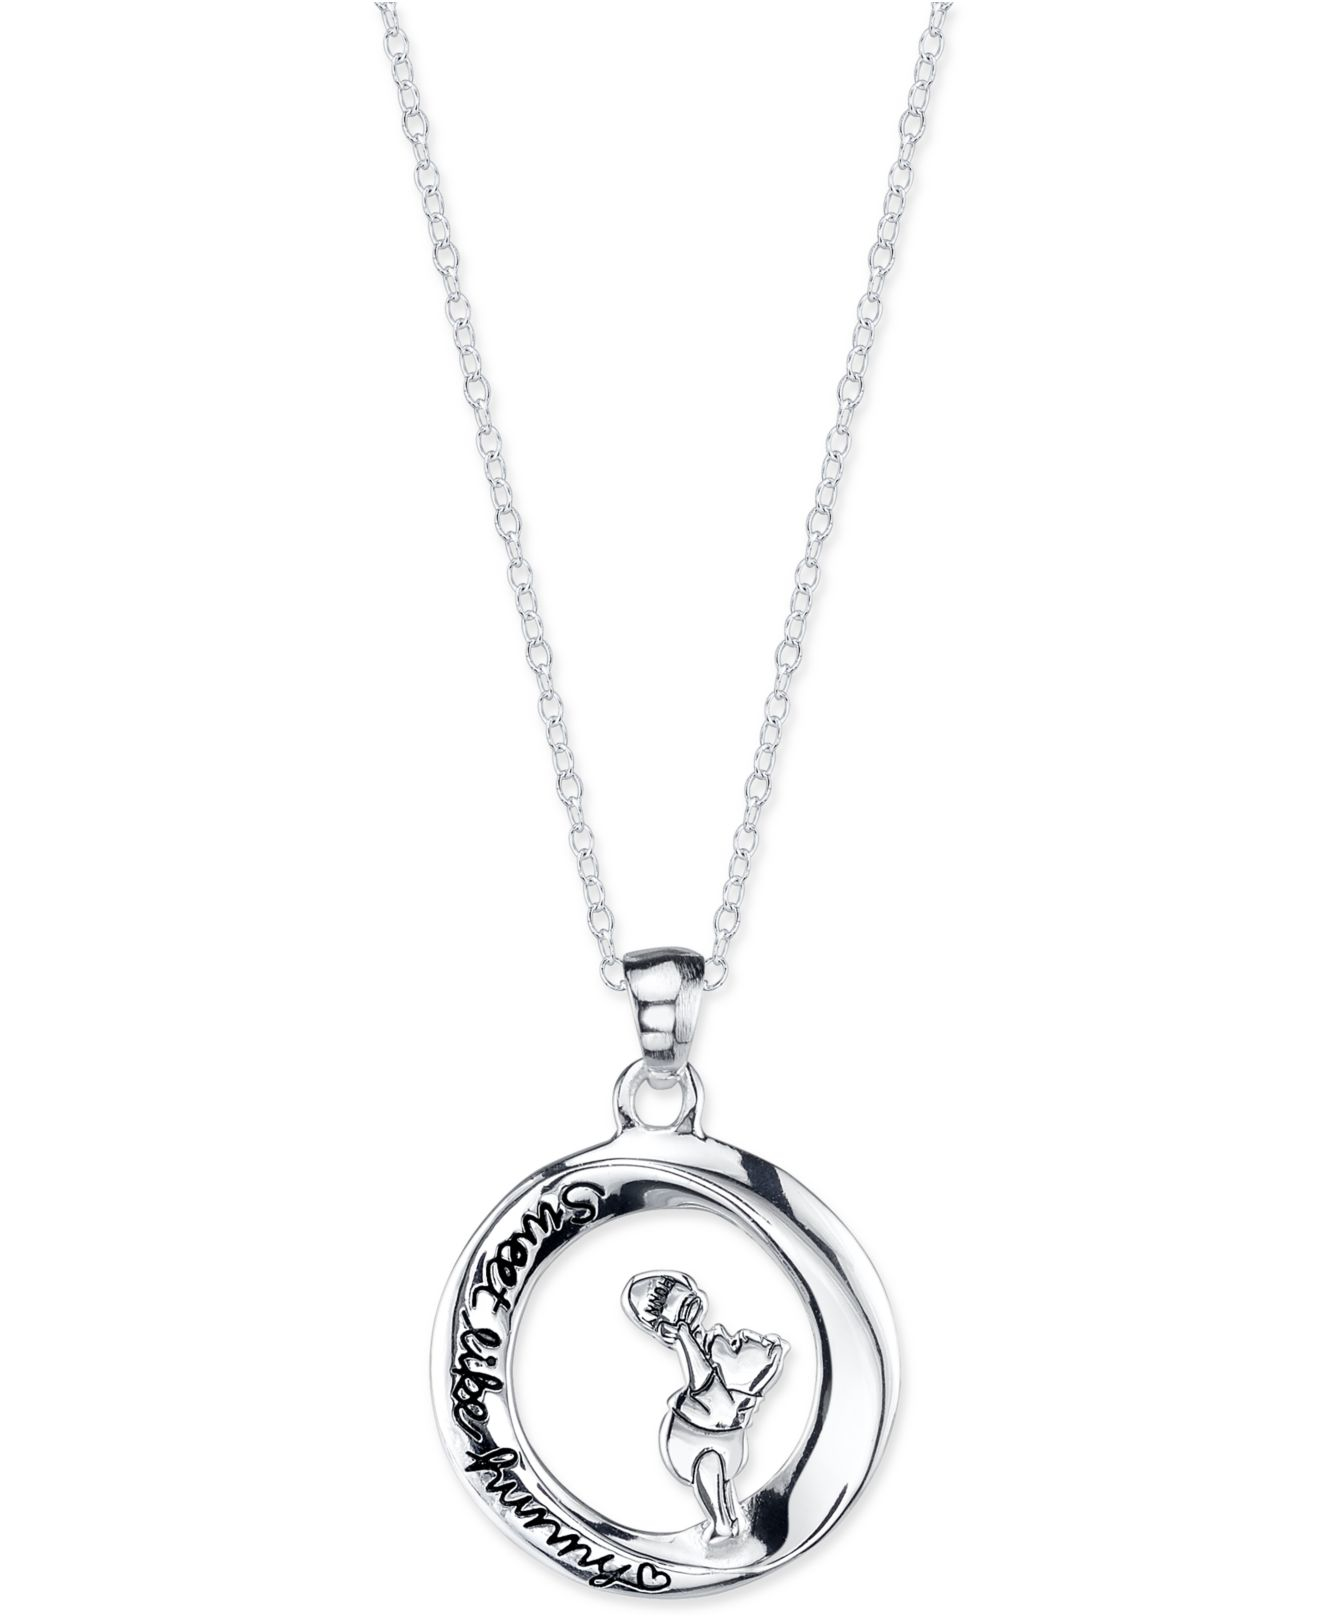 Lyst disney pooh engraved pendant necklace in sterling silver in gallery mozeypictures Images